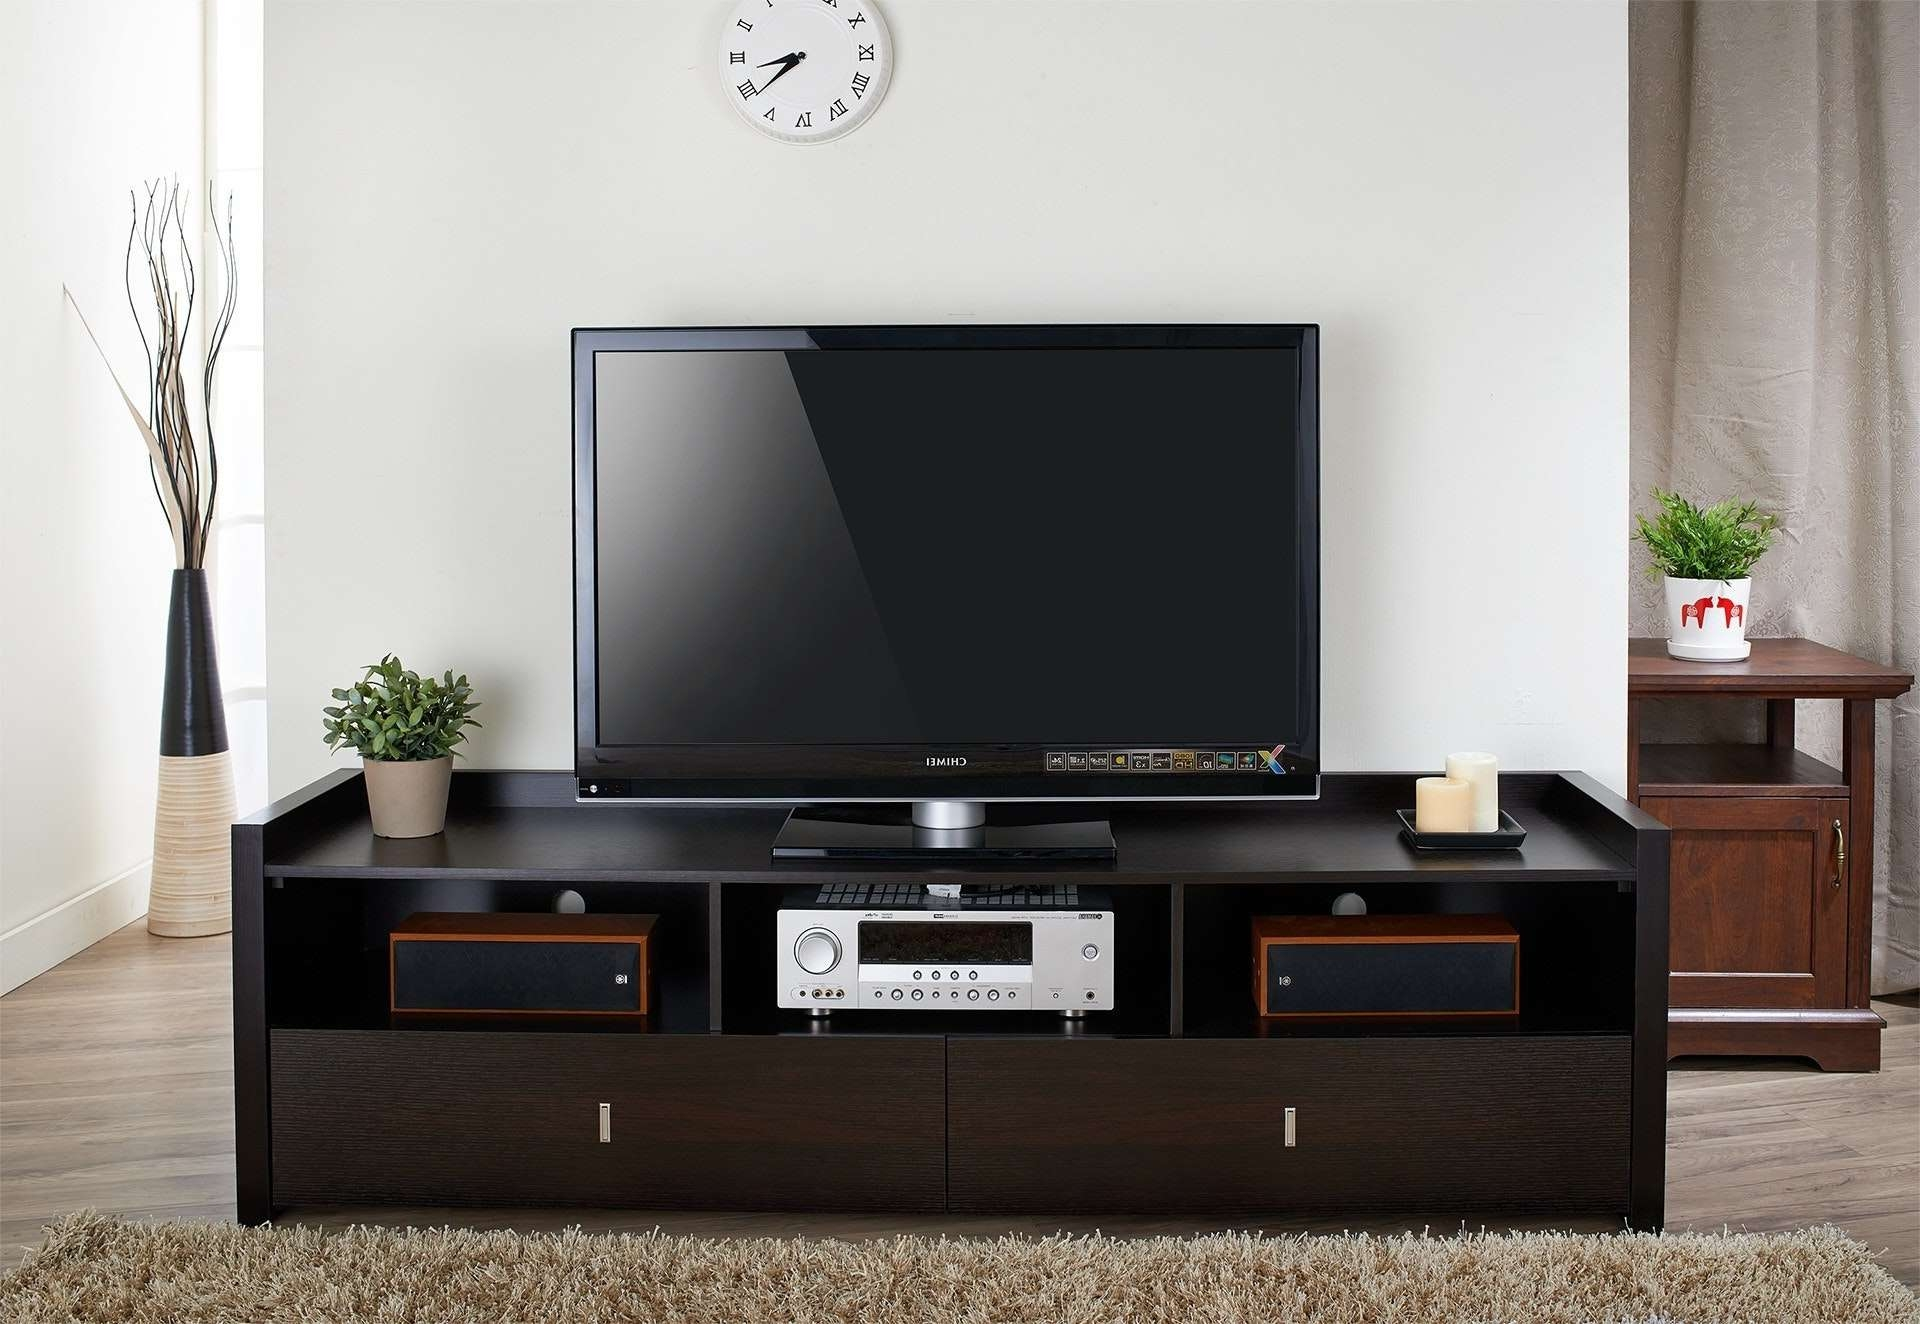 Gallery 1 Furniture Centre 15 Photos 80 Inch Tv Stands